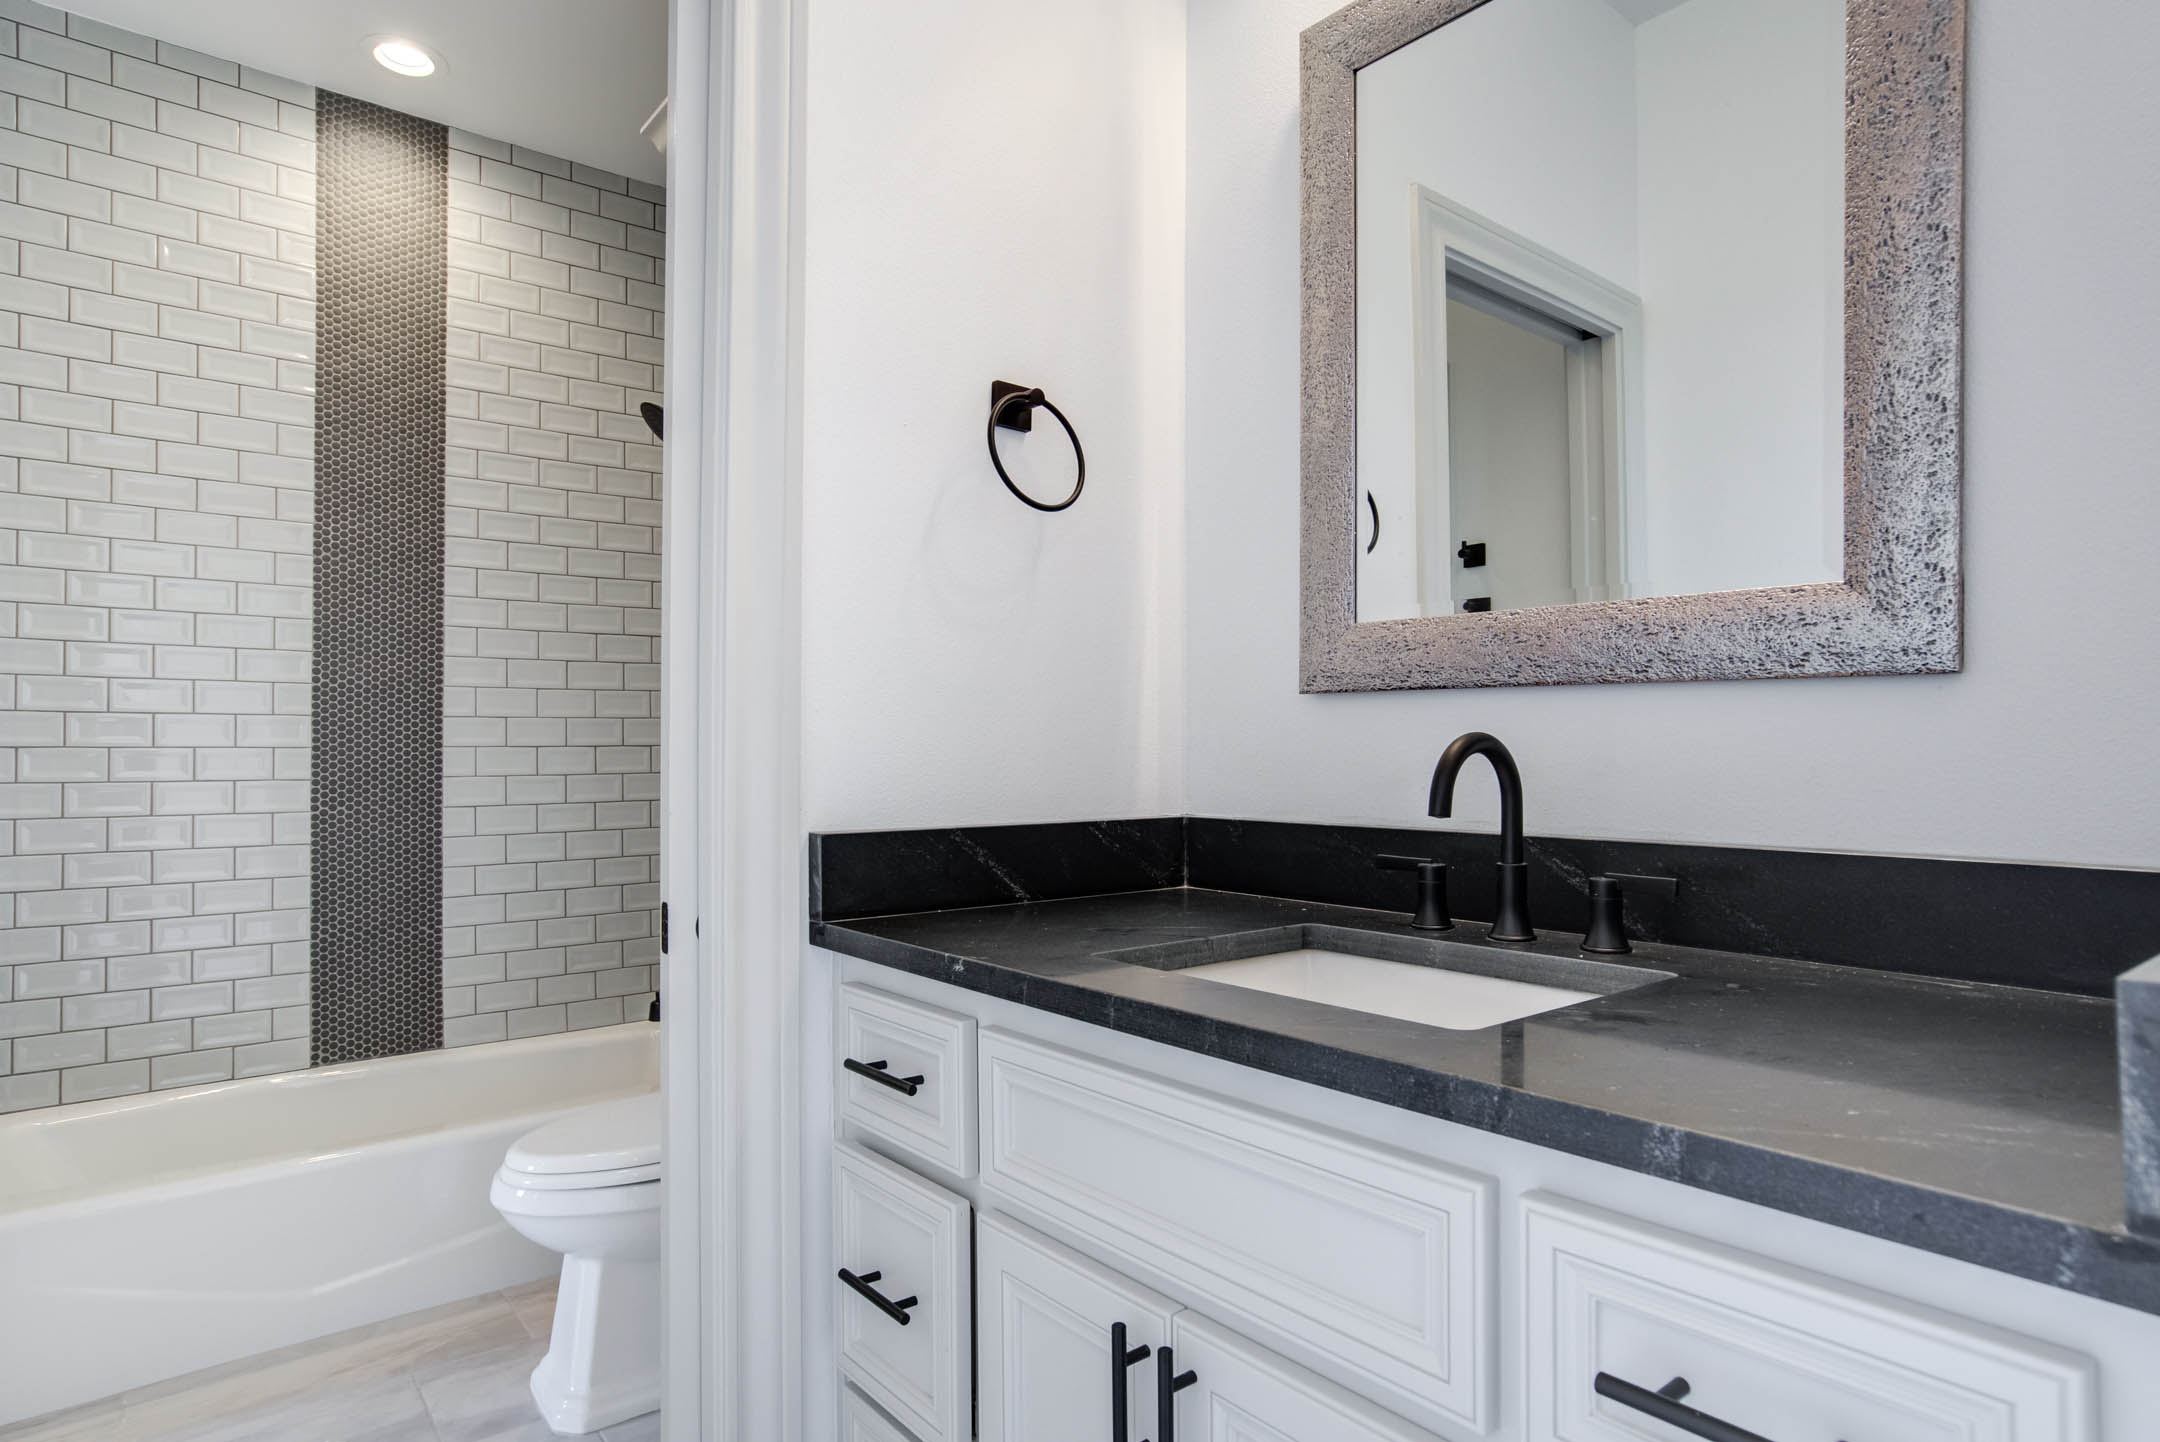 Vanity in bath of new home for sale near Lubbock.